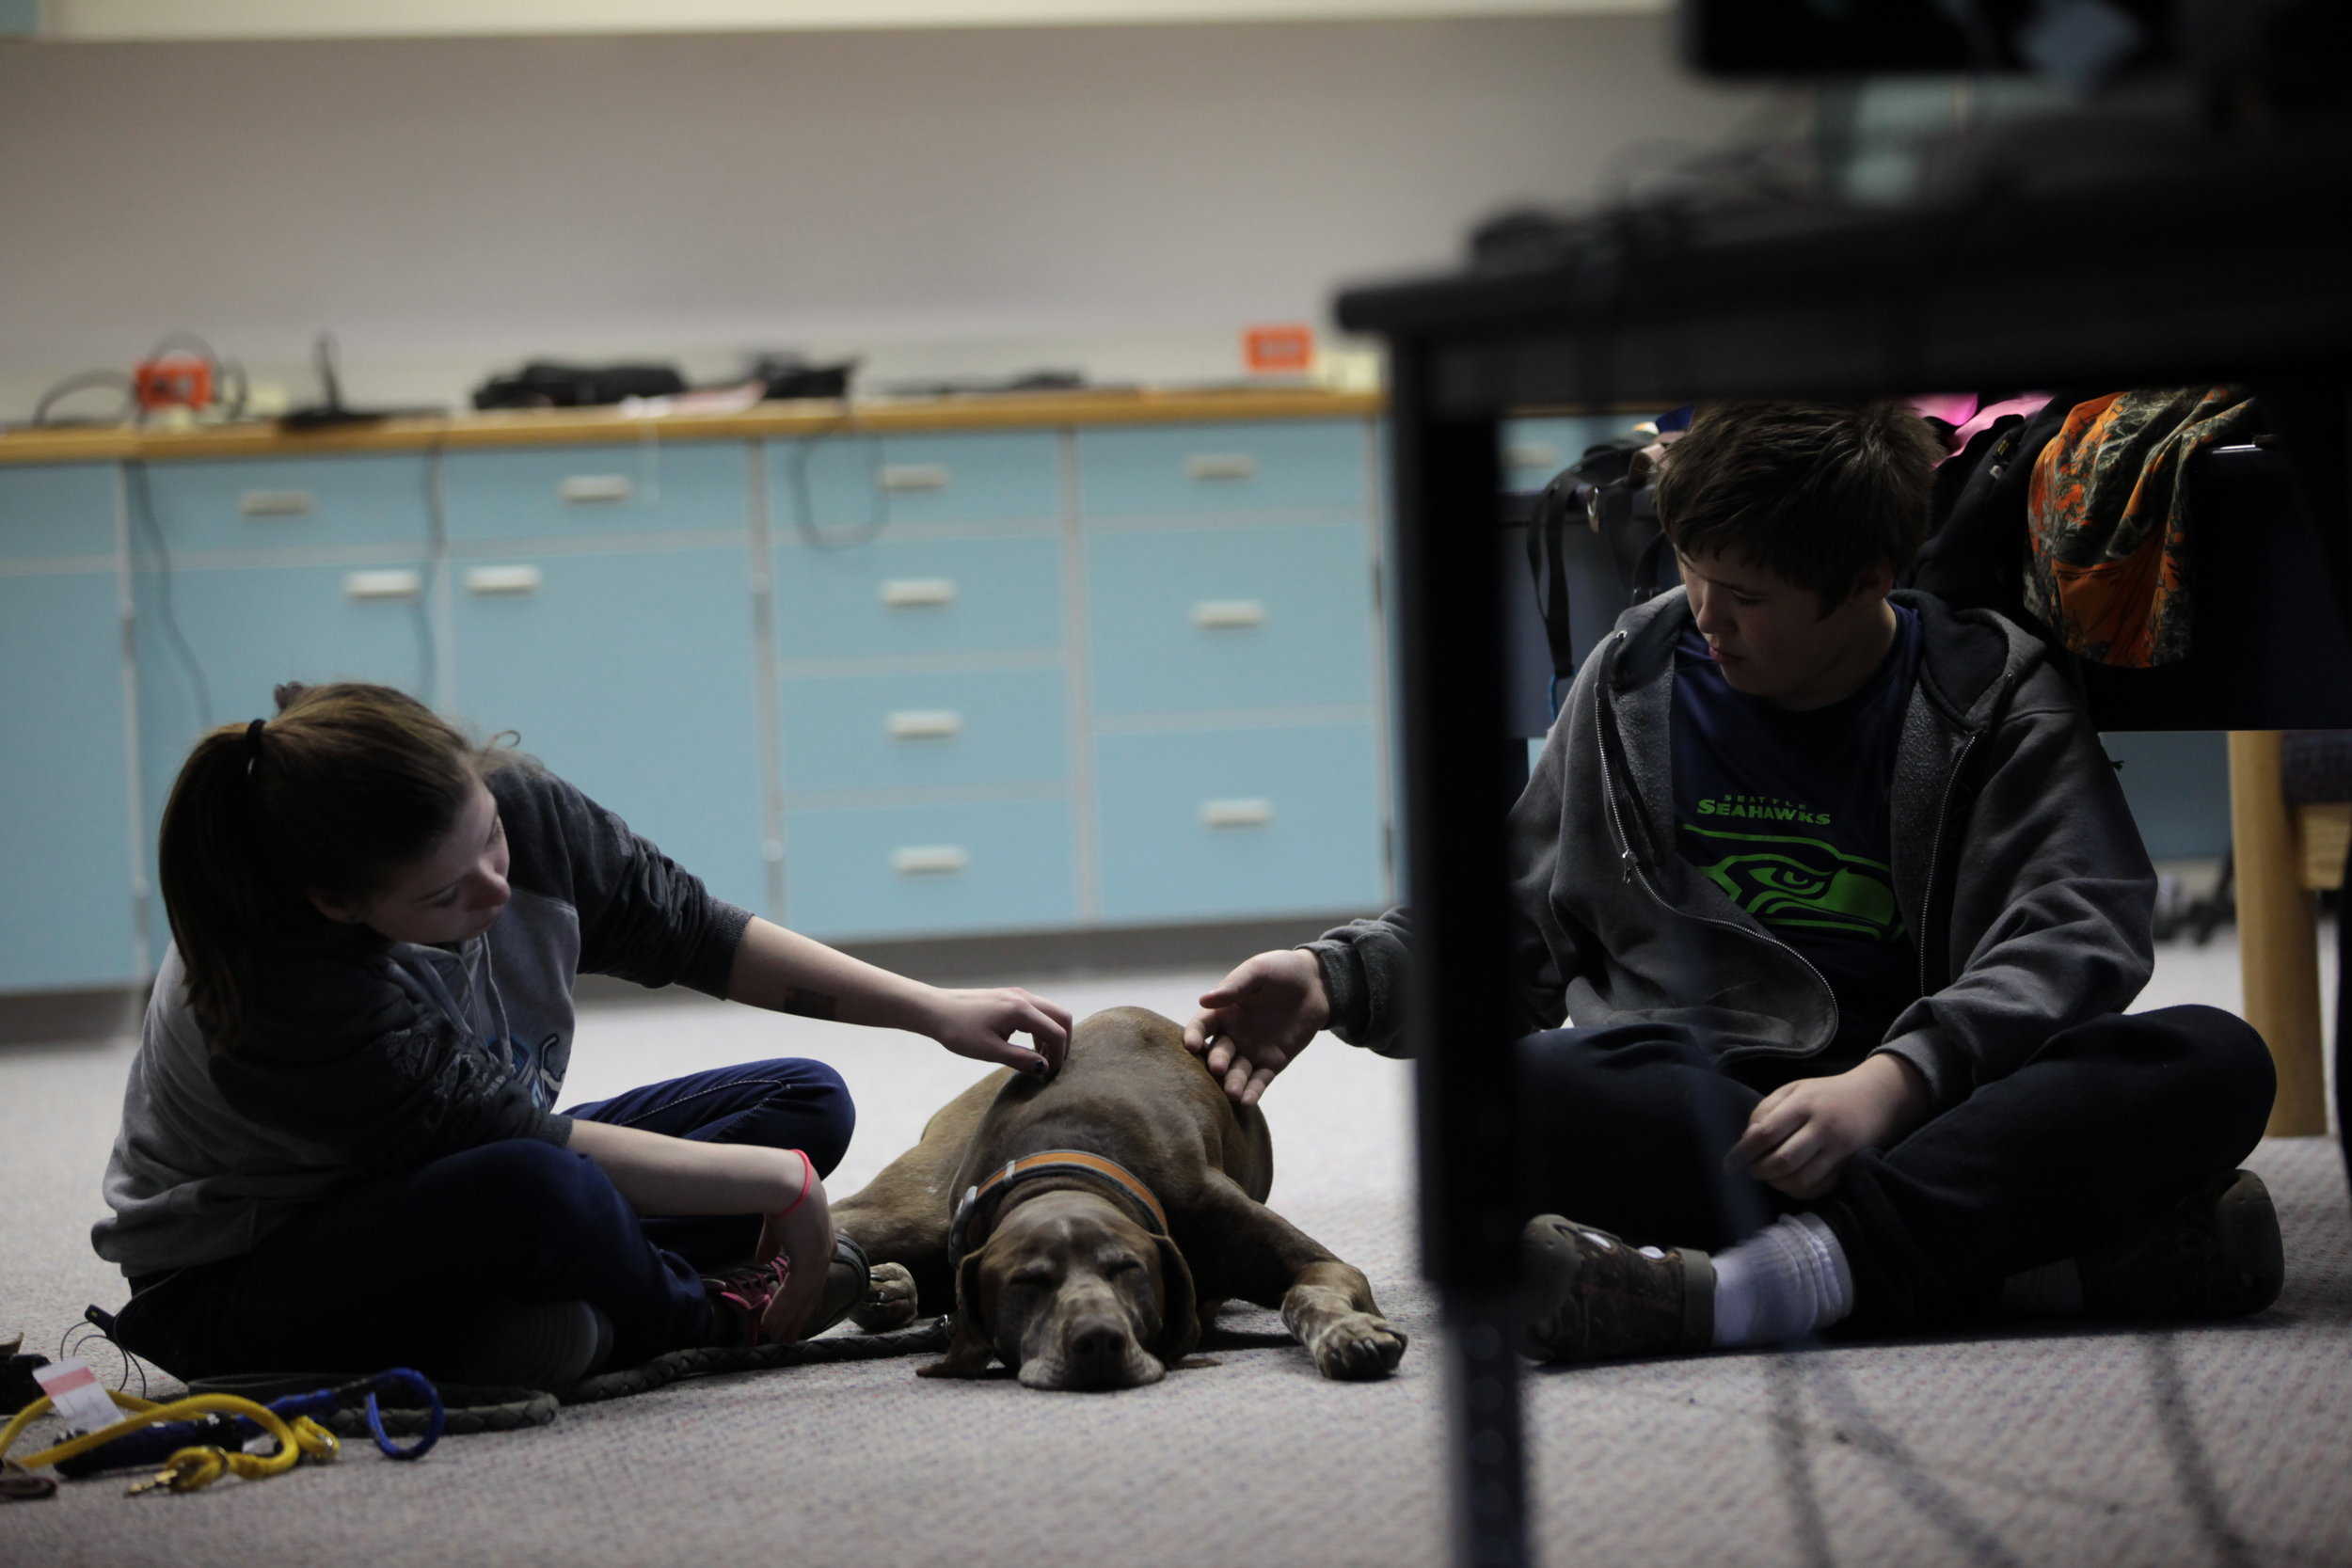 Tok students with dog in classroom.